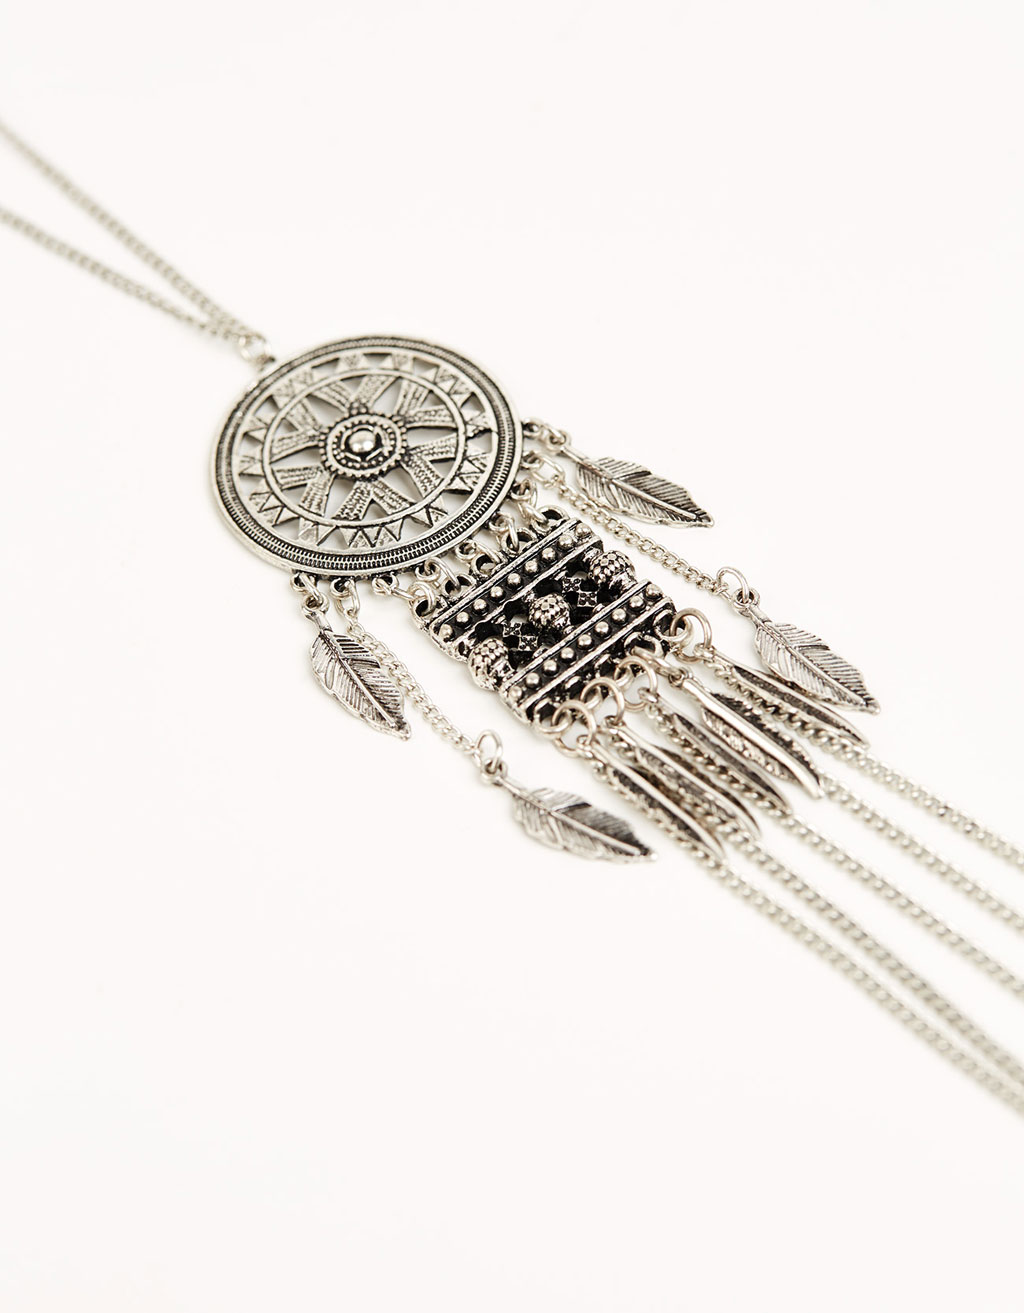 Dream catcher chain necklace